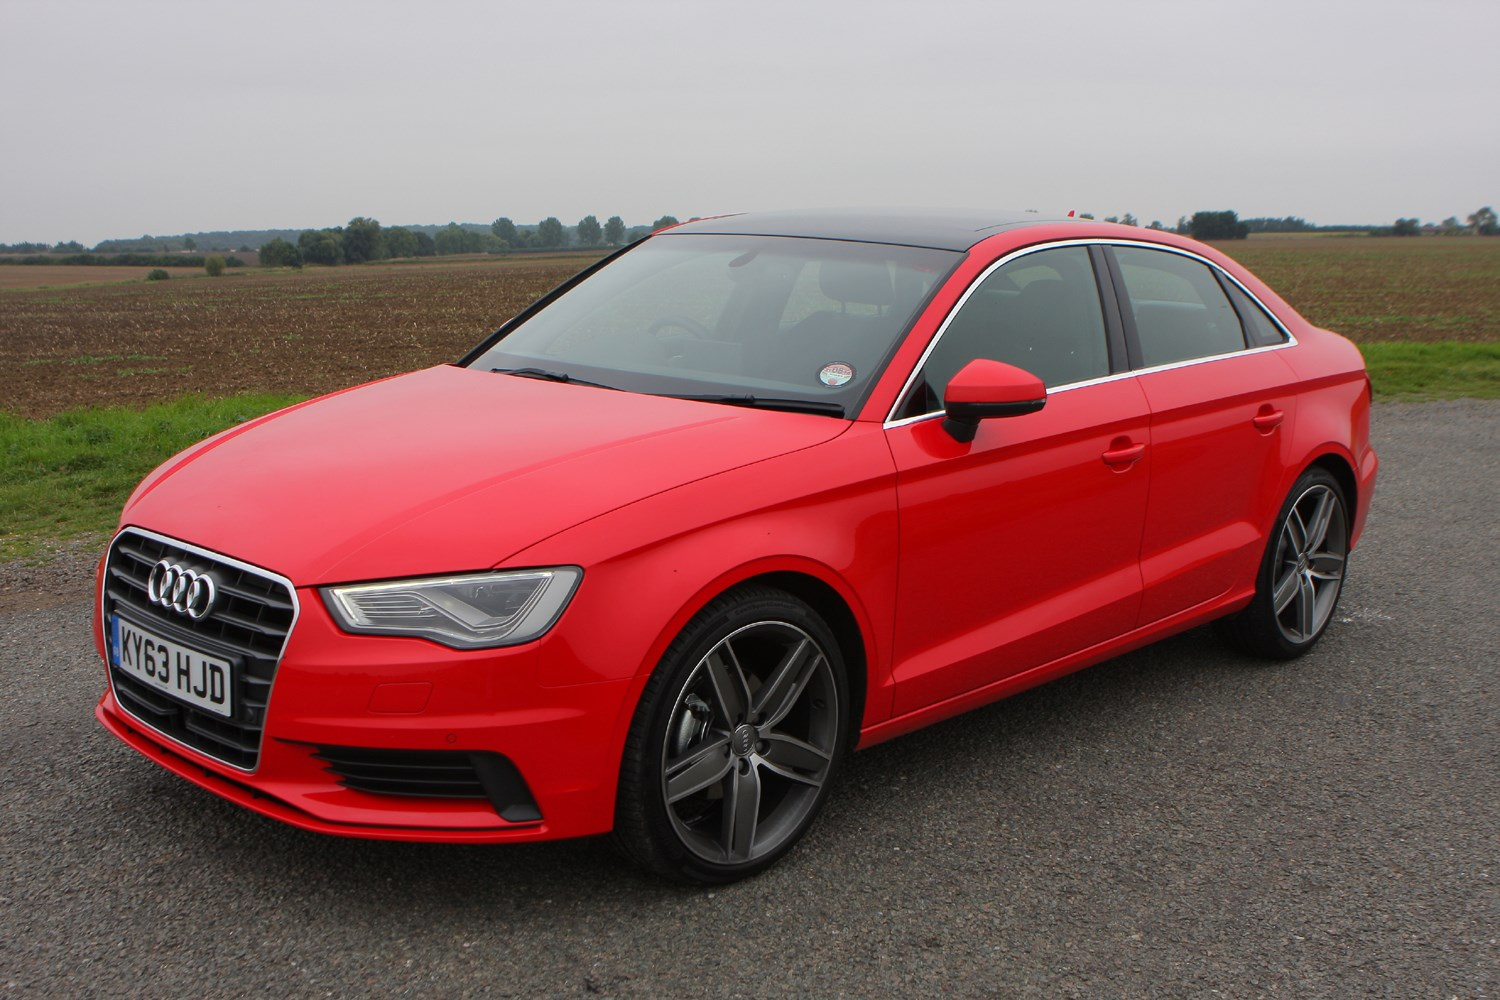 audi a3 saloon 2013 running costs parkers. Black Bedroom Furniture Sets. Home Design Ideas